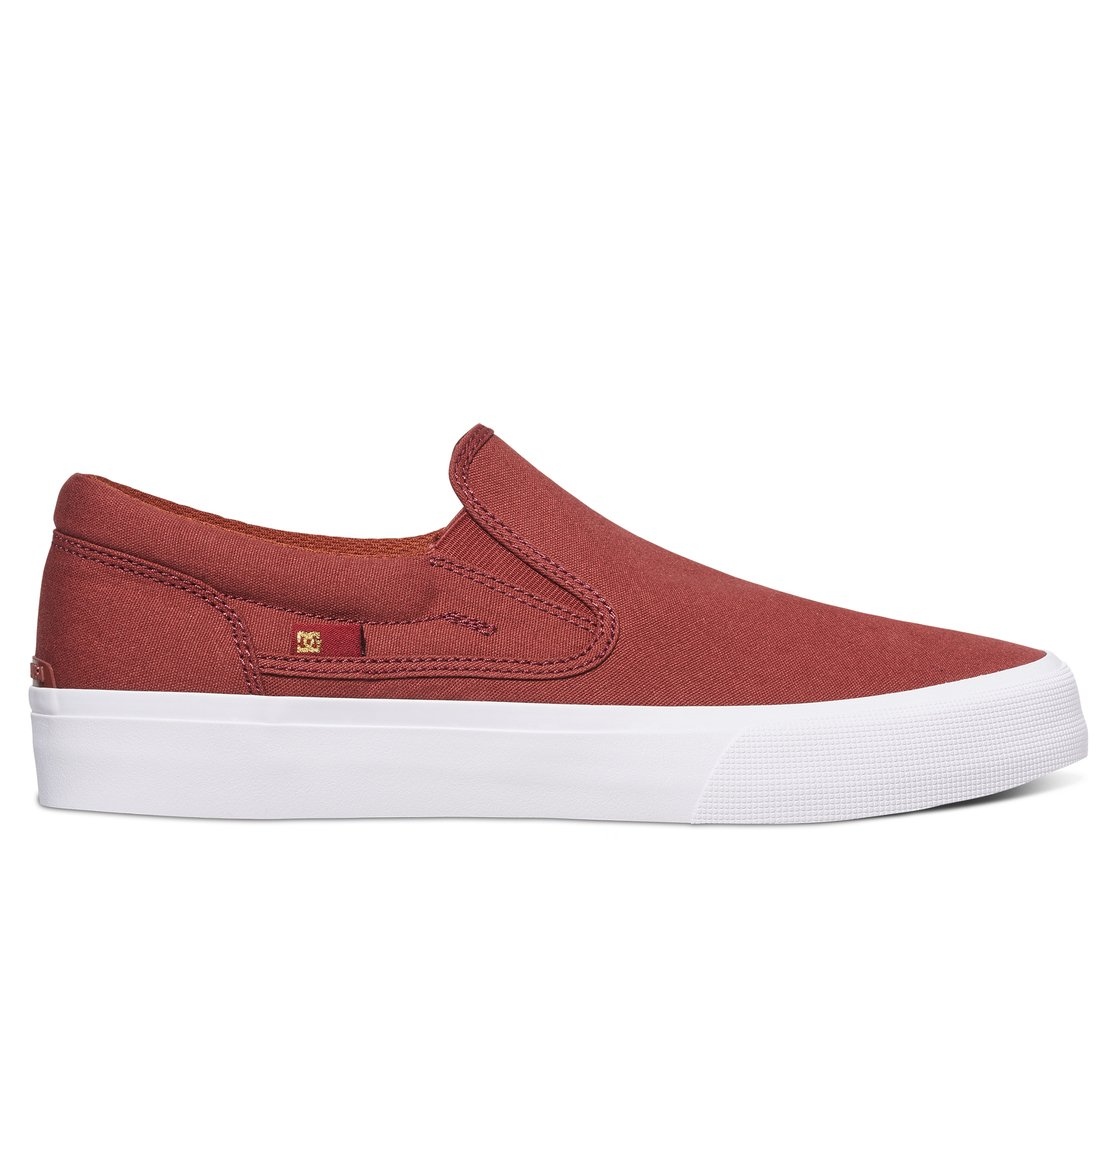 Skate shoes honolulu